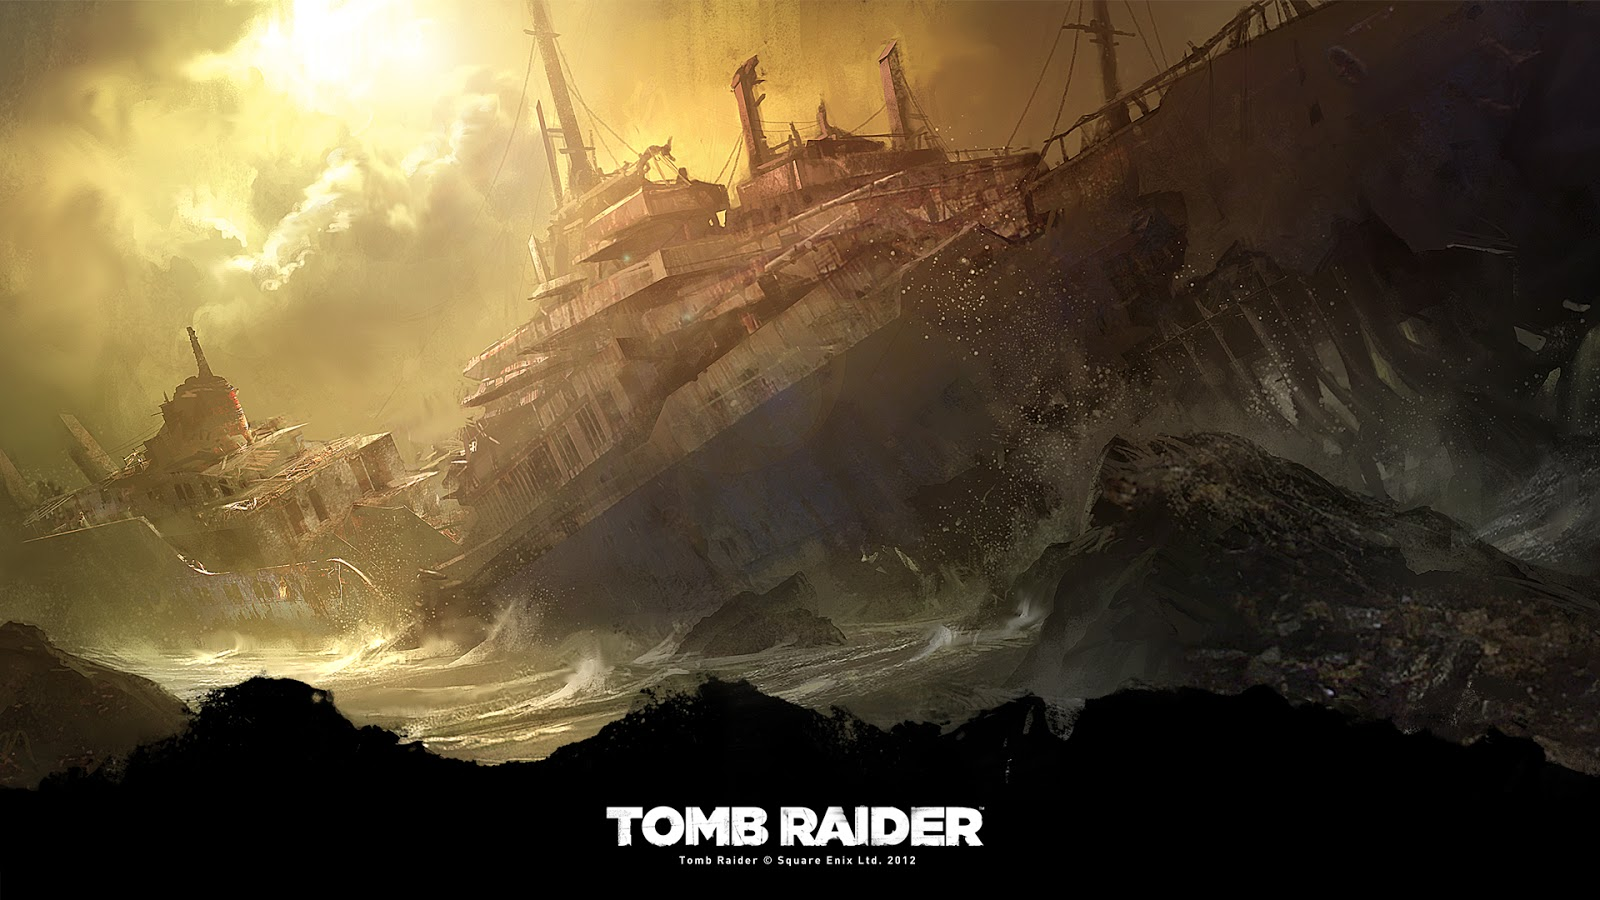 Tomb Raider HD & Widescreen Wallpaper 0.9321381777599